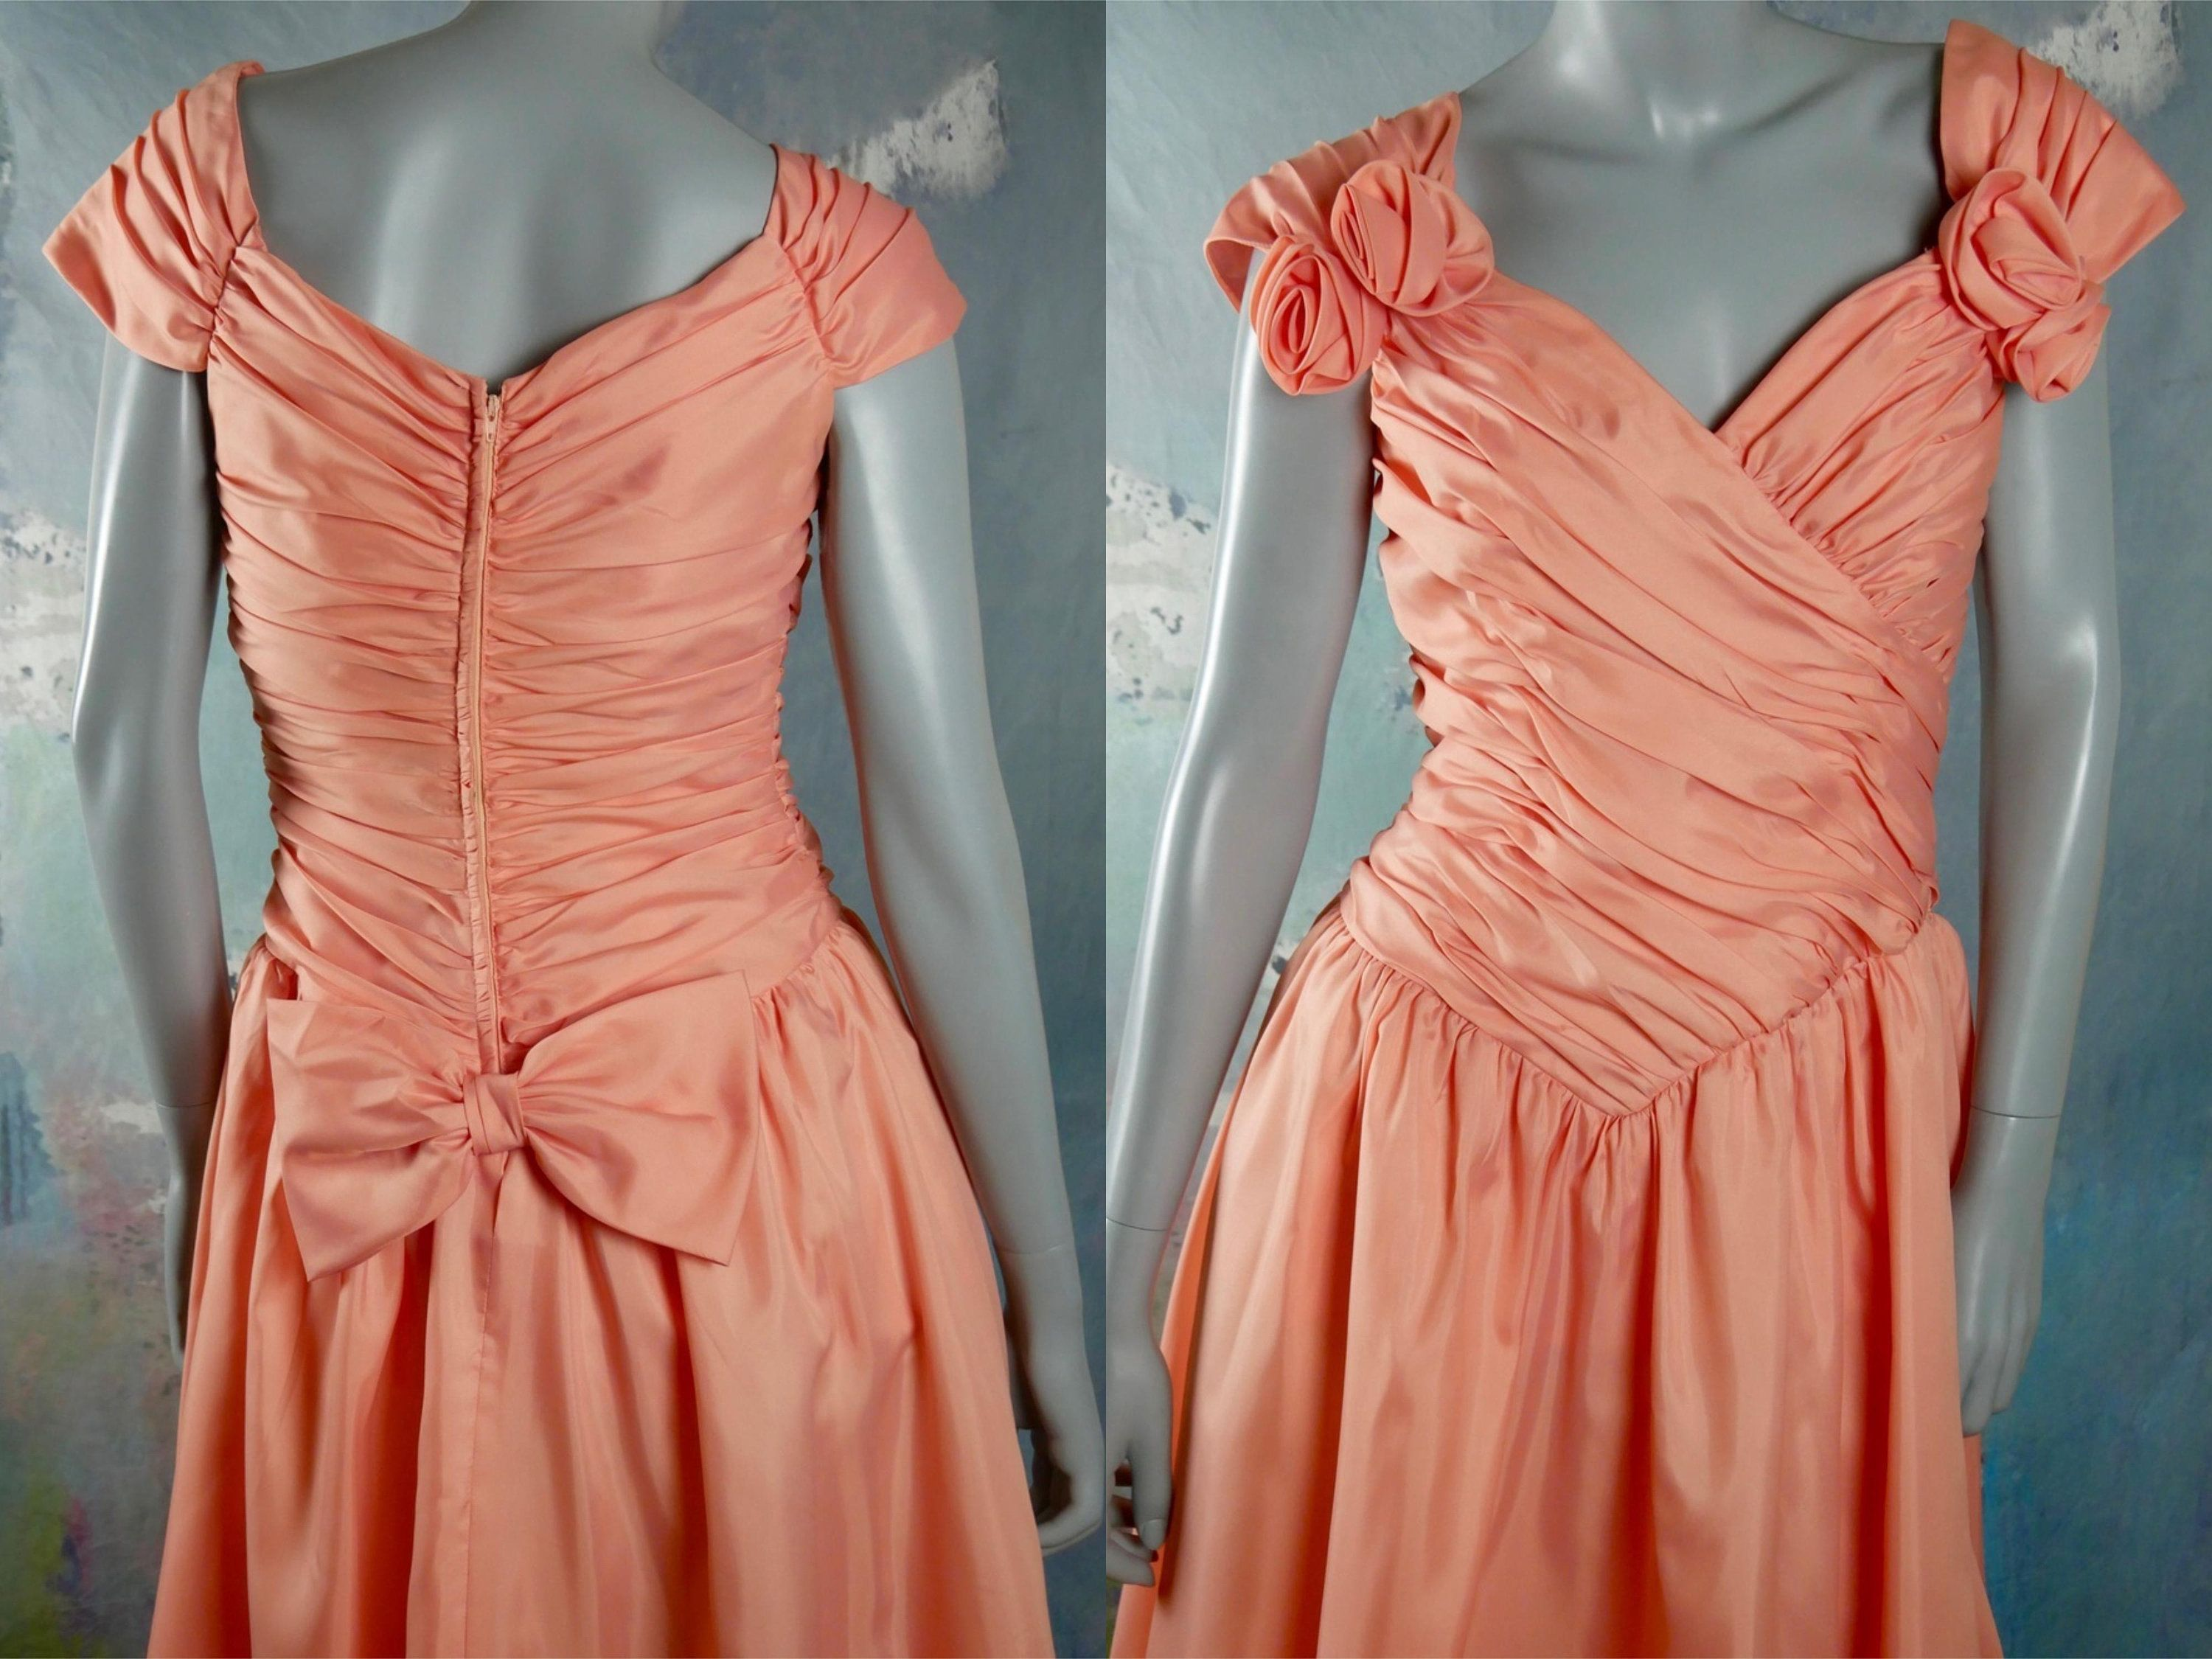 Vintage 80s Prom Dress Peach Colored Below The Knee Evening Etsy 80s Prom Dress Formal Party Dress Prom Dresses [ 2250 x 3000 Pixel ]